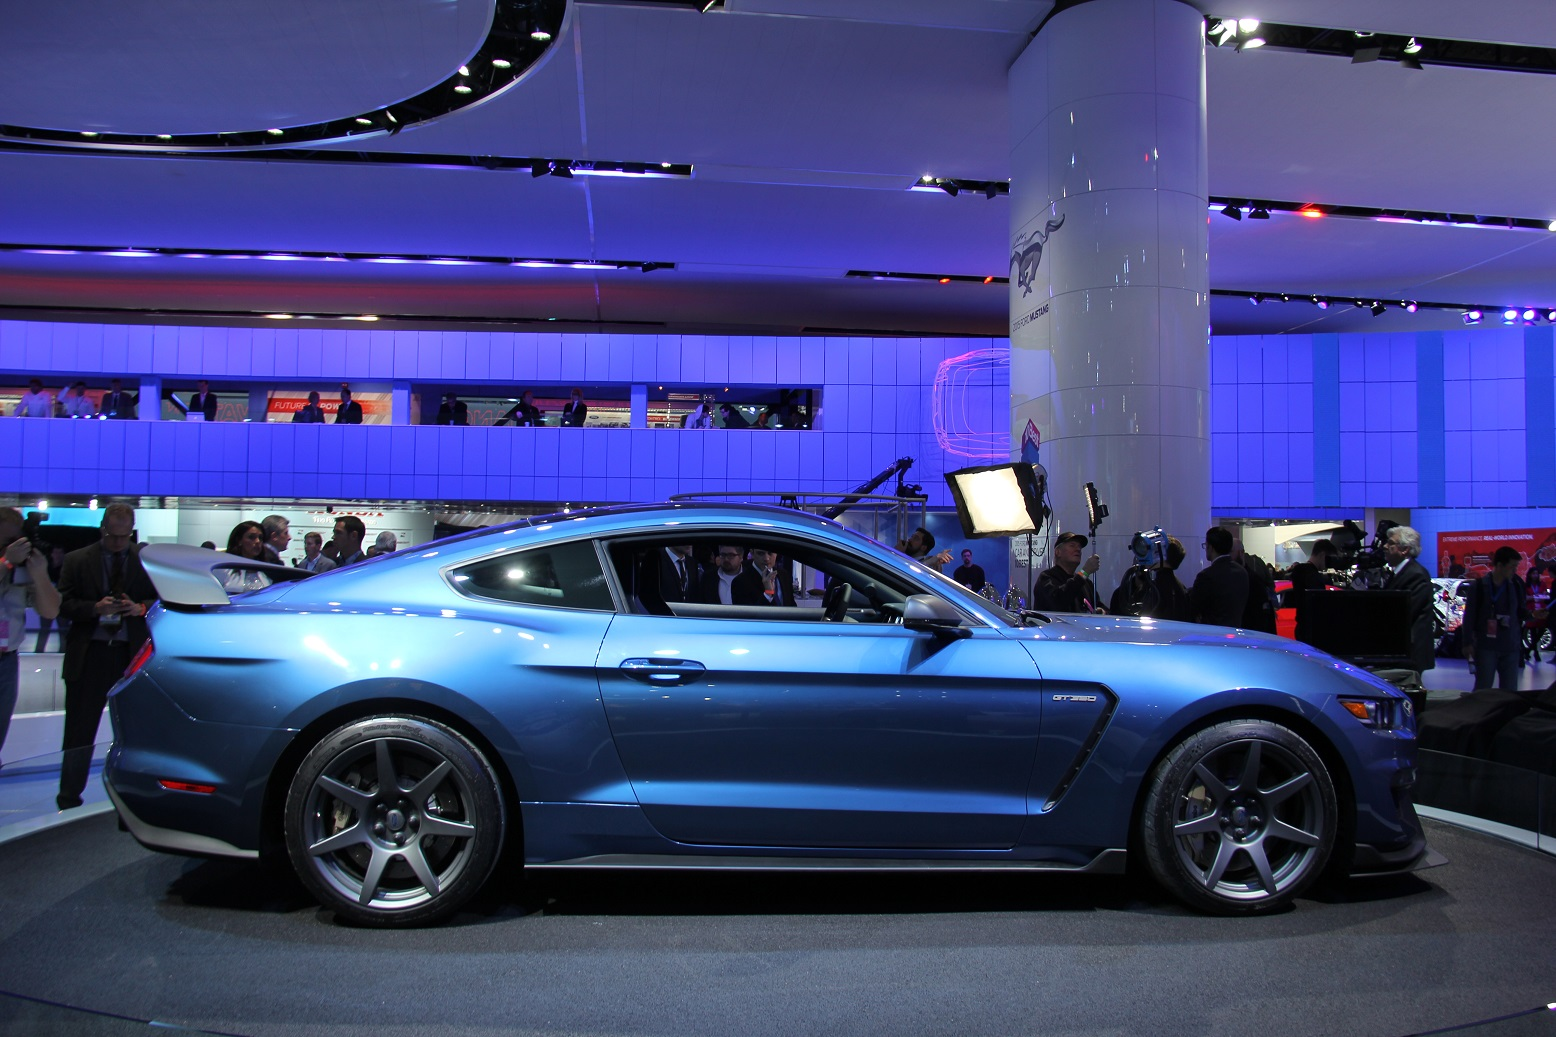 New 2016 Ford Mustang Shelby GT350R